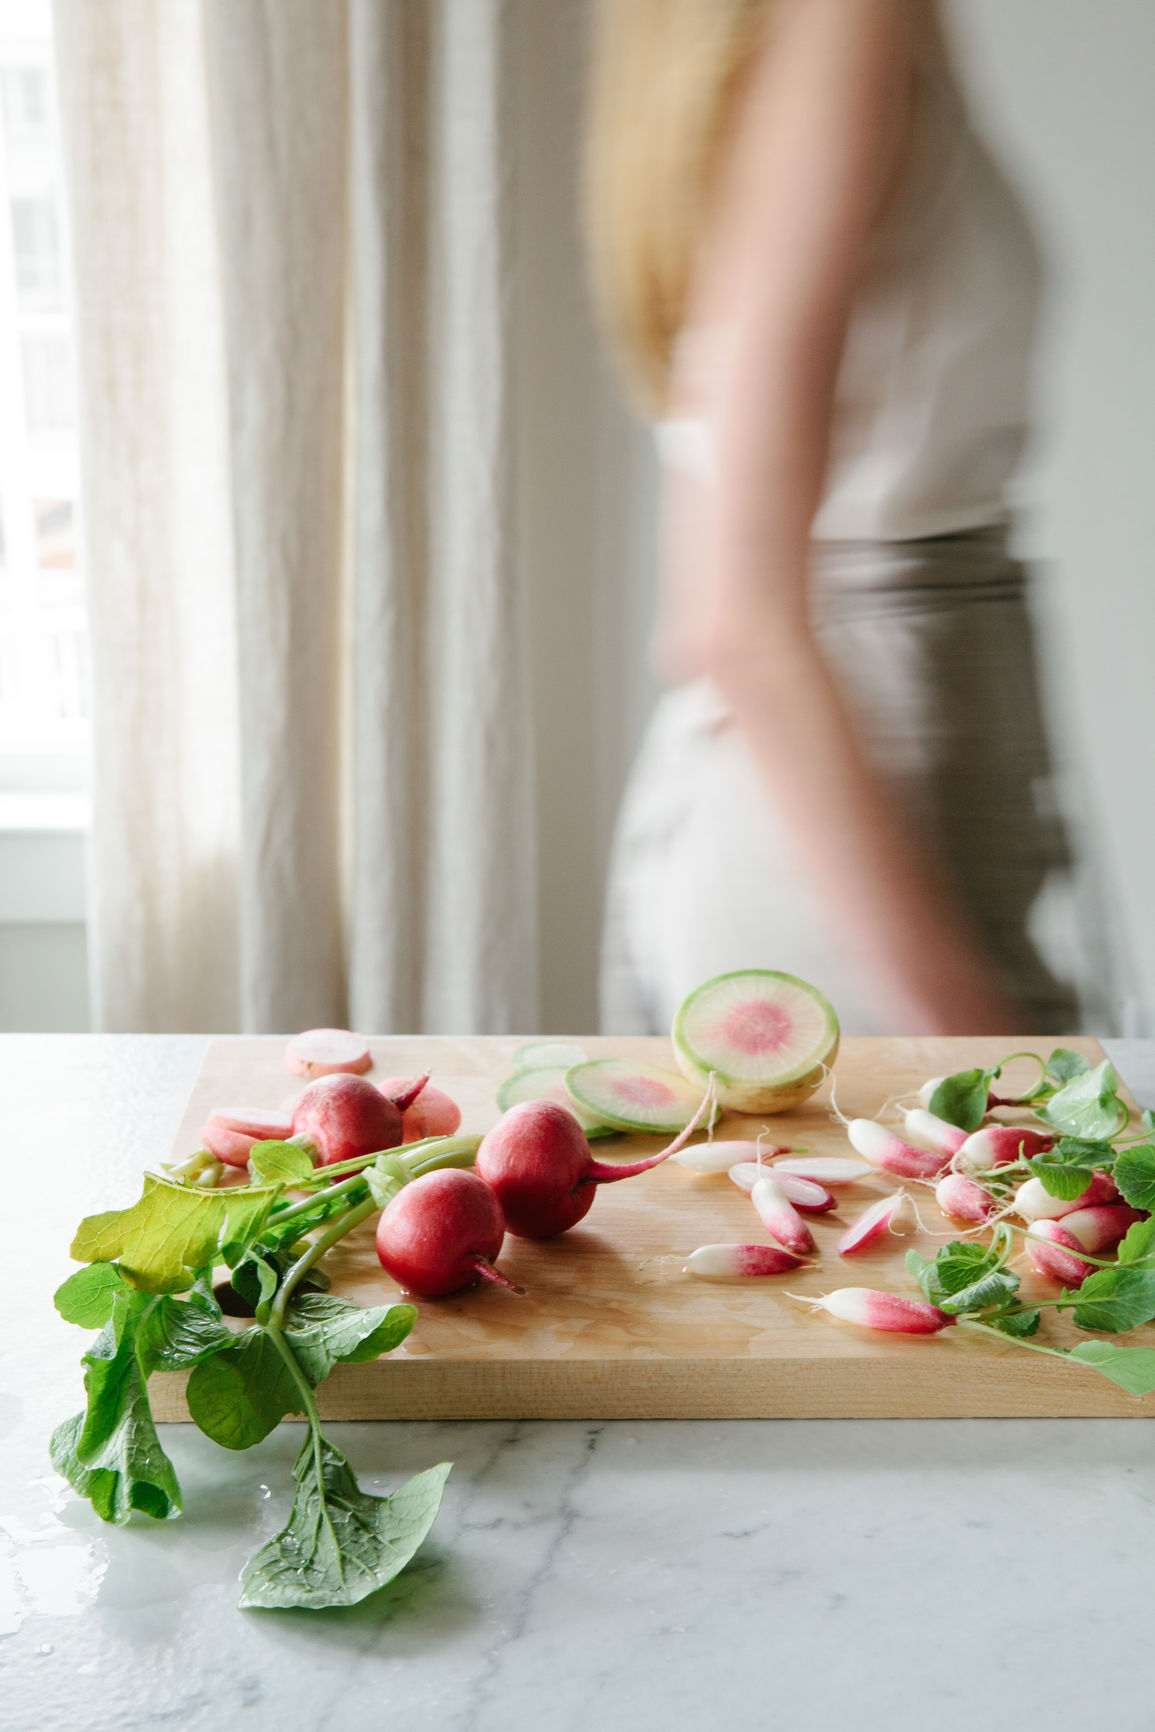 Interior gallery - 6 of 6 - Radishes on top of wood cutting board